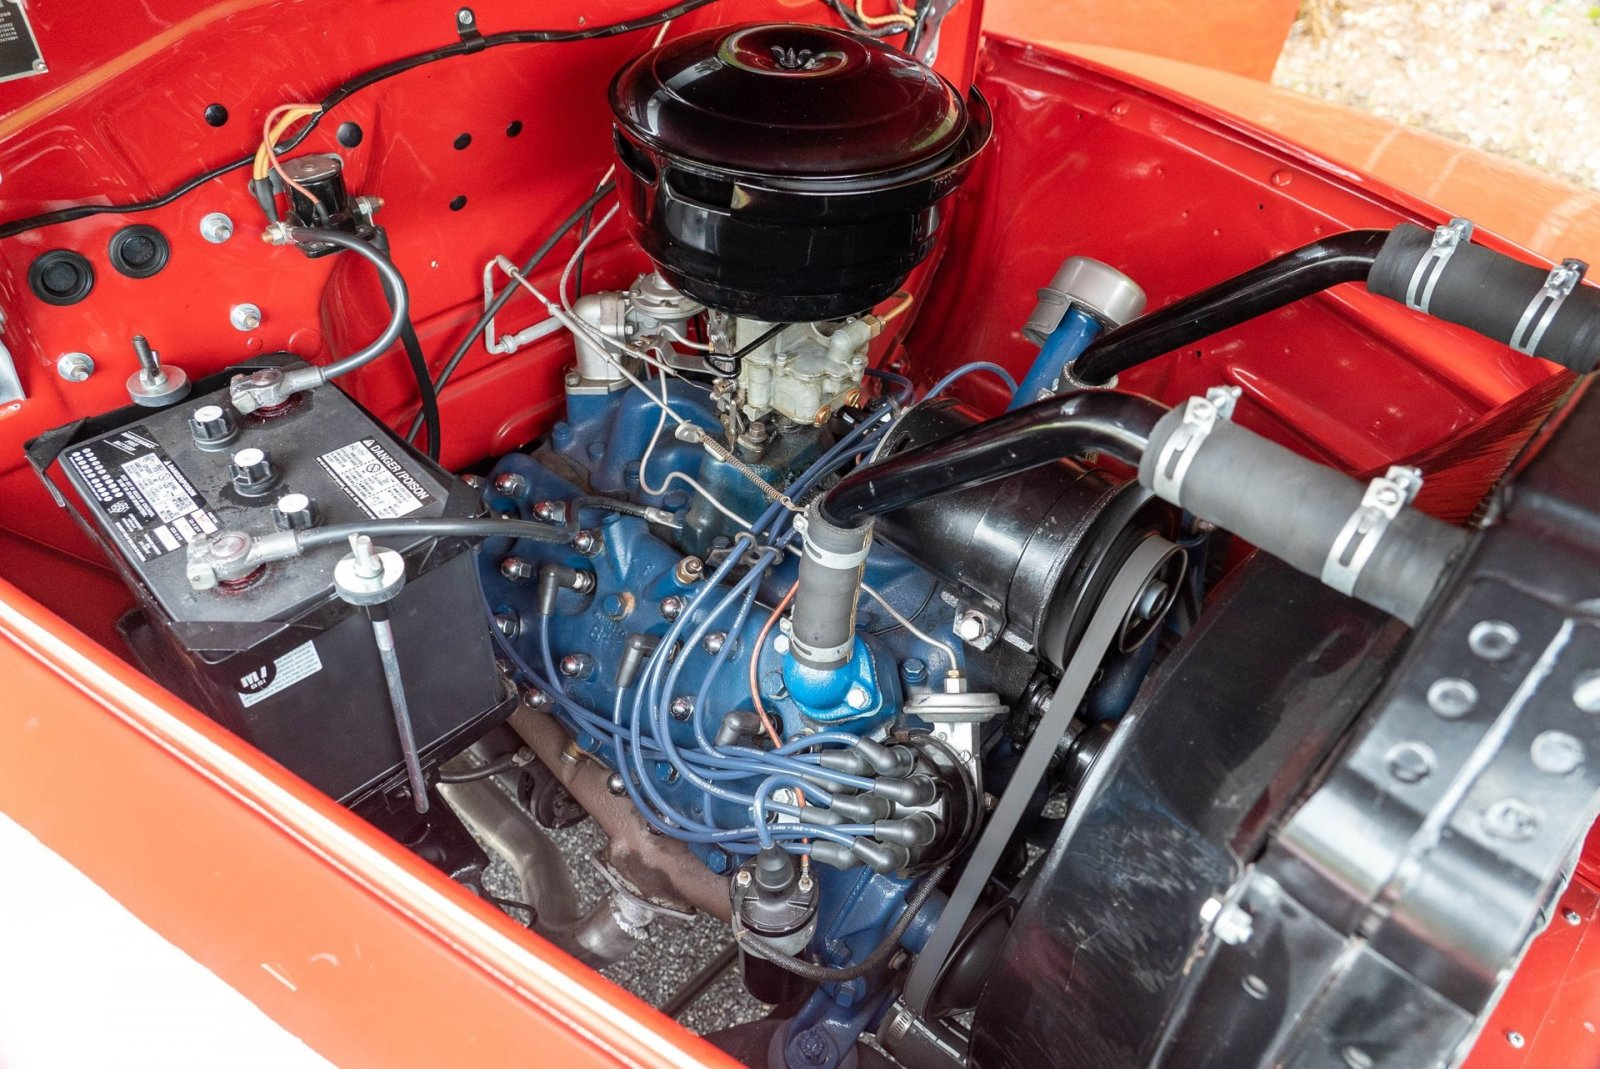 1952 FORD F1 FIVE STAR CAB 12 TON - For Sale 11.jpg